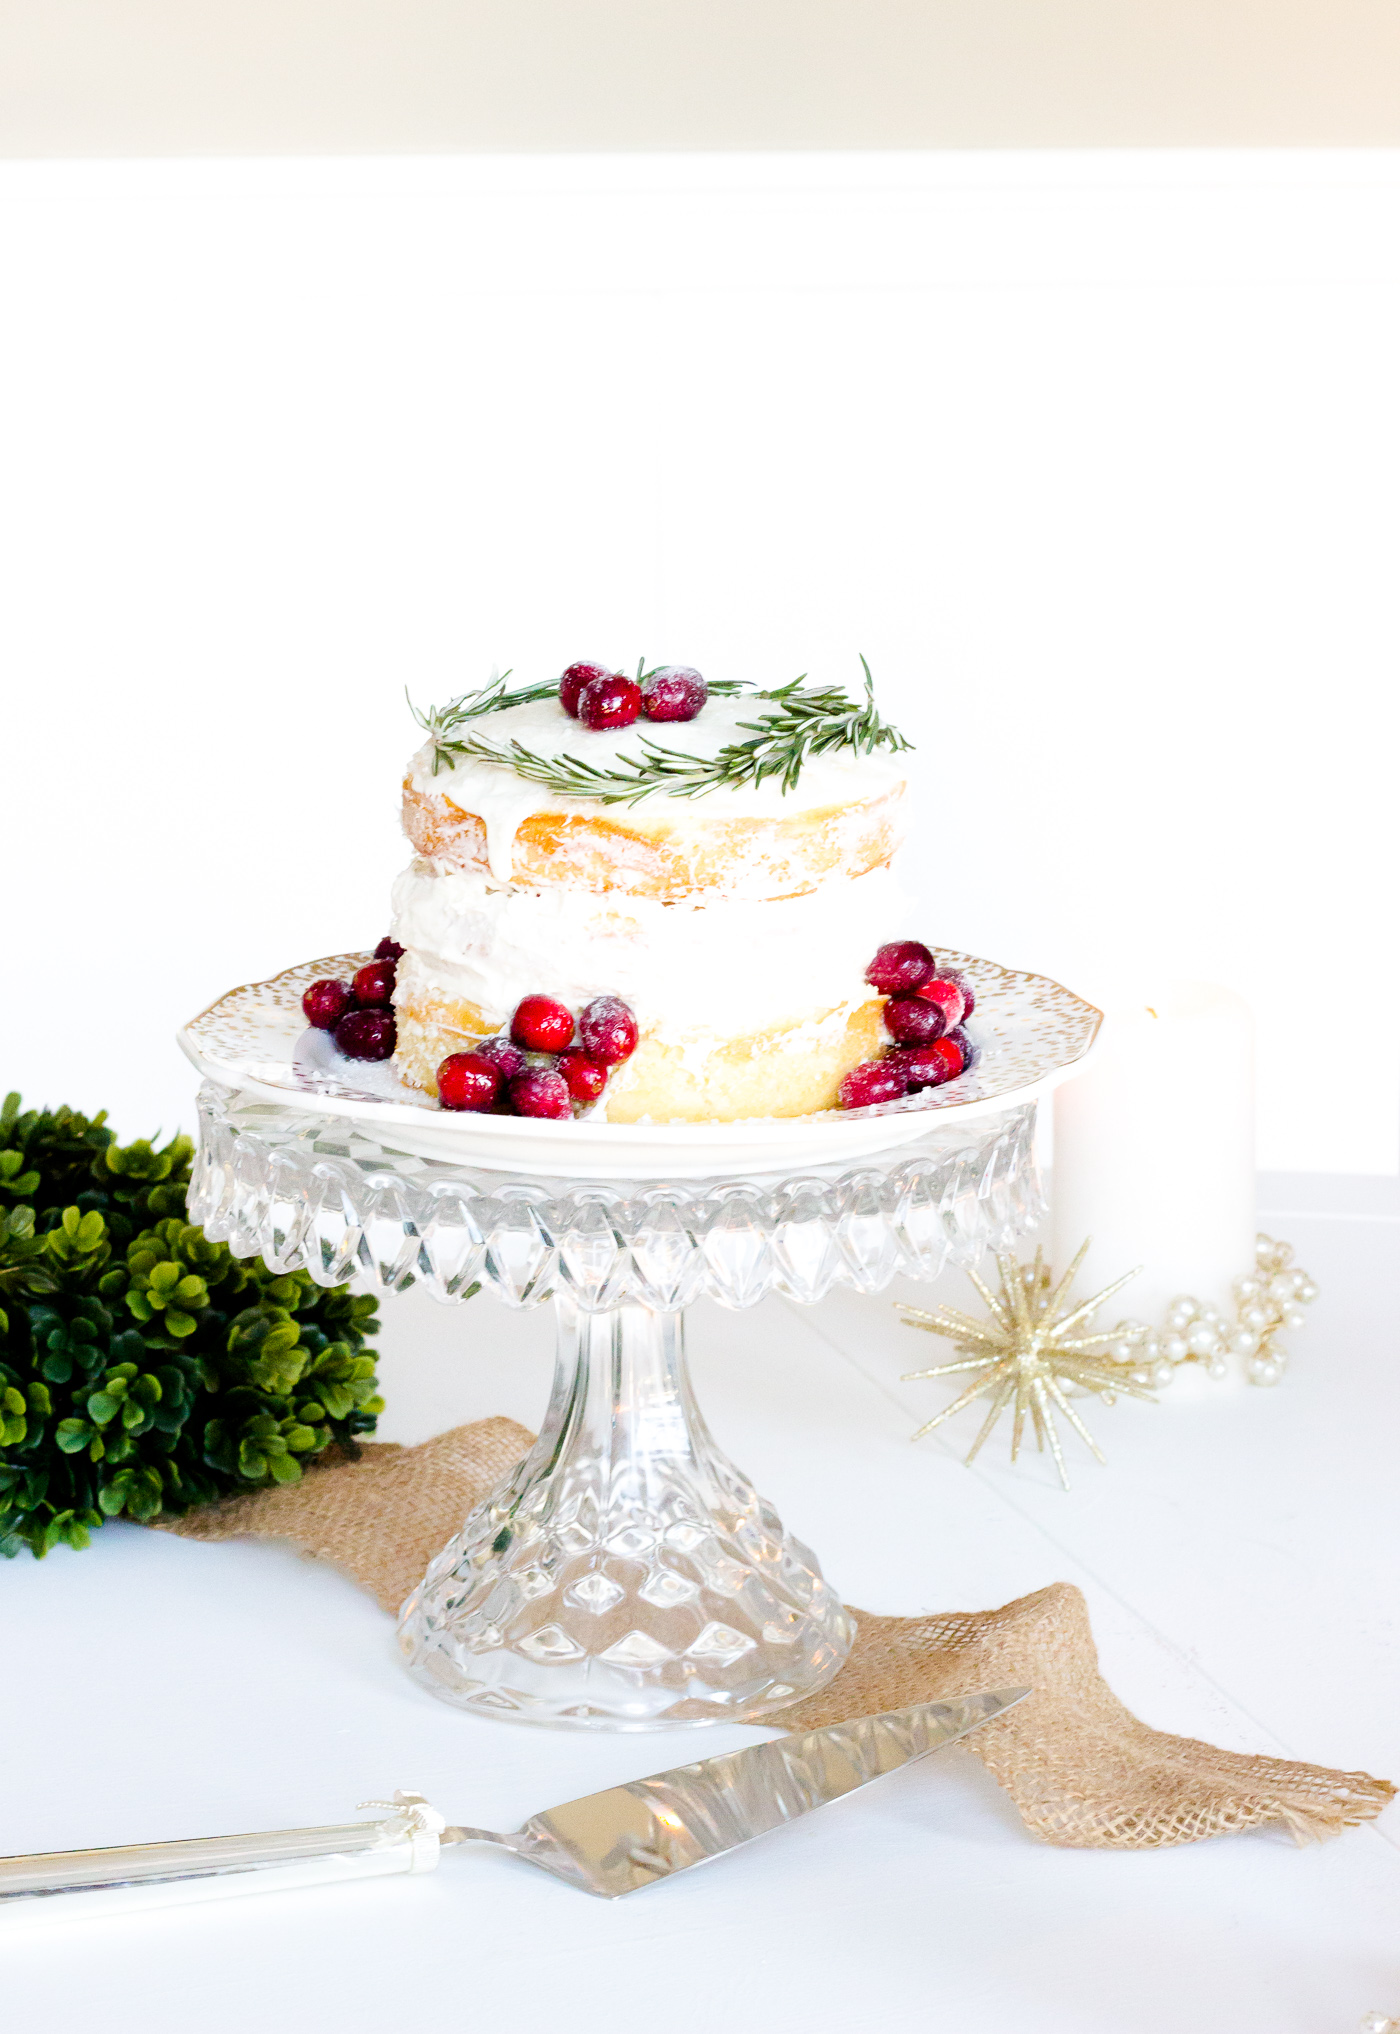 Naked Holiday Cake Recipe with sugared cranberries. Beautiful and easy to make! #nakedcake #holidaydessert #christmastime